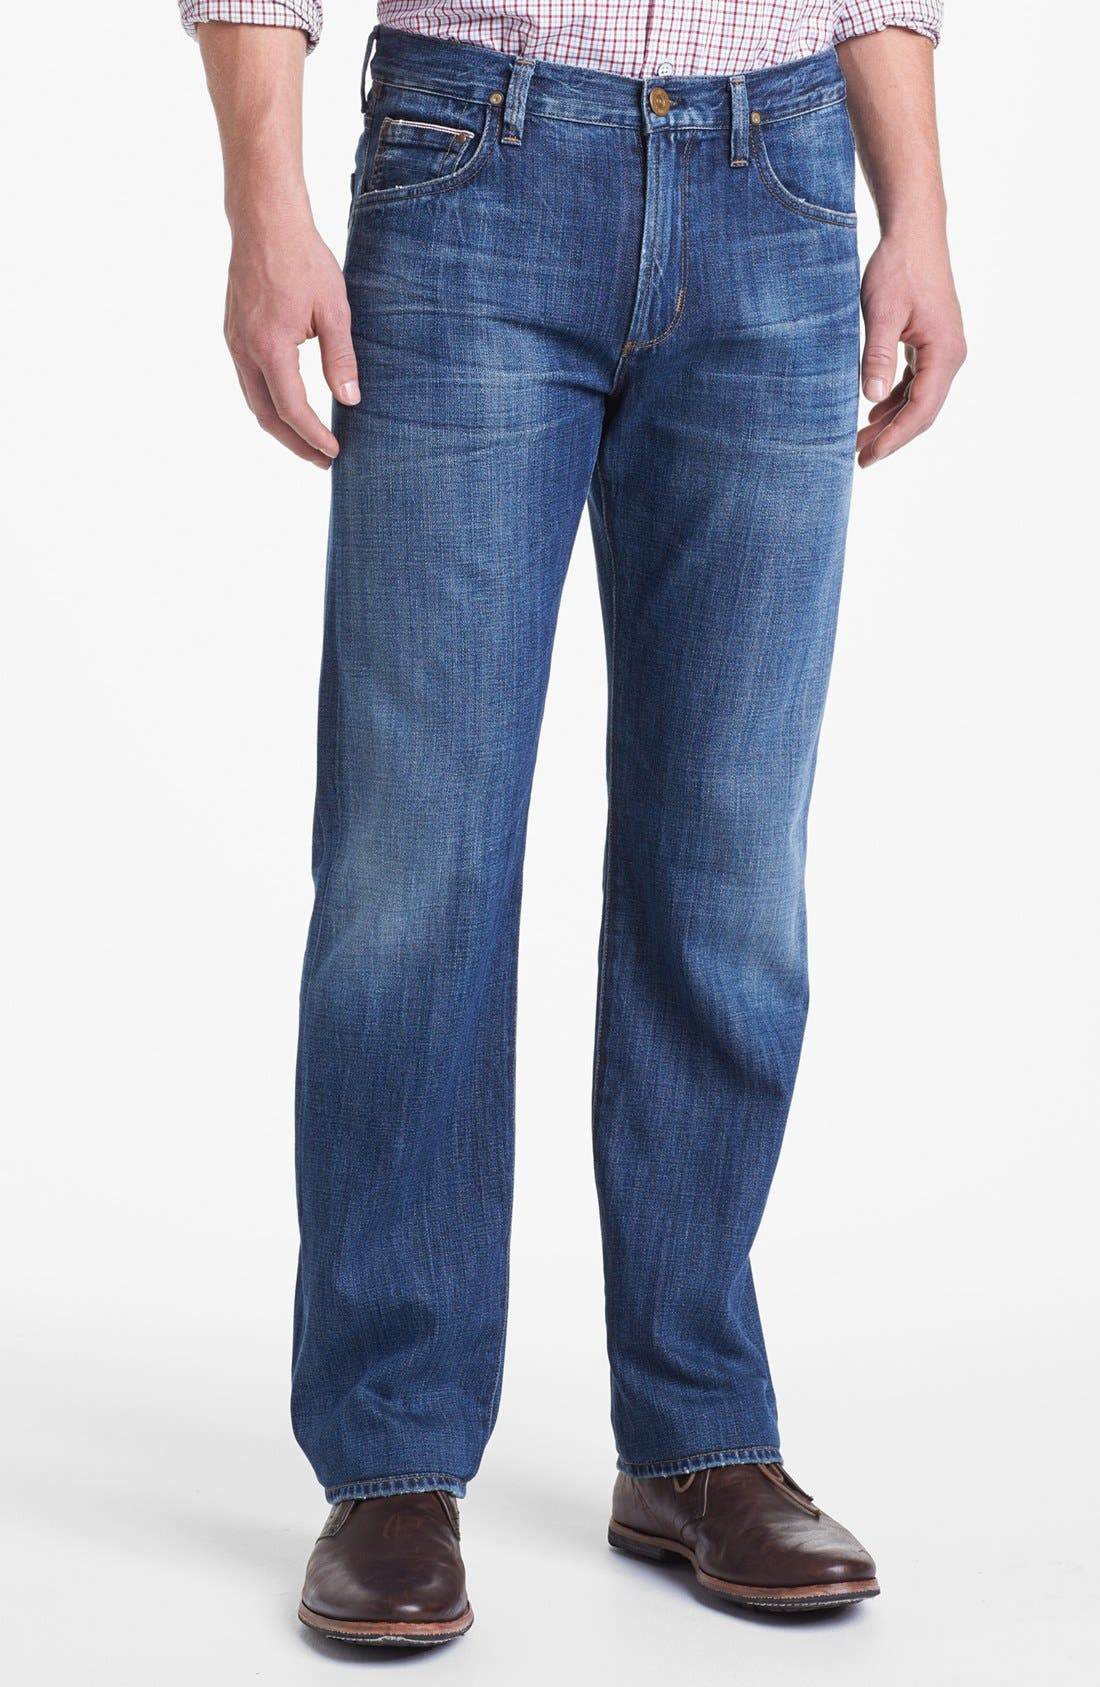 Main Image - Citizens of Humanity 'Sid Selvage' Straight Leg Jeans (Kory Wash)